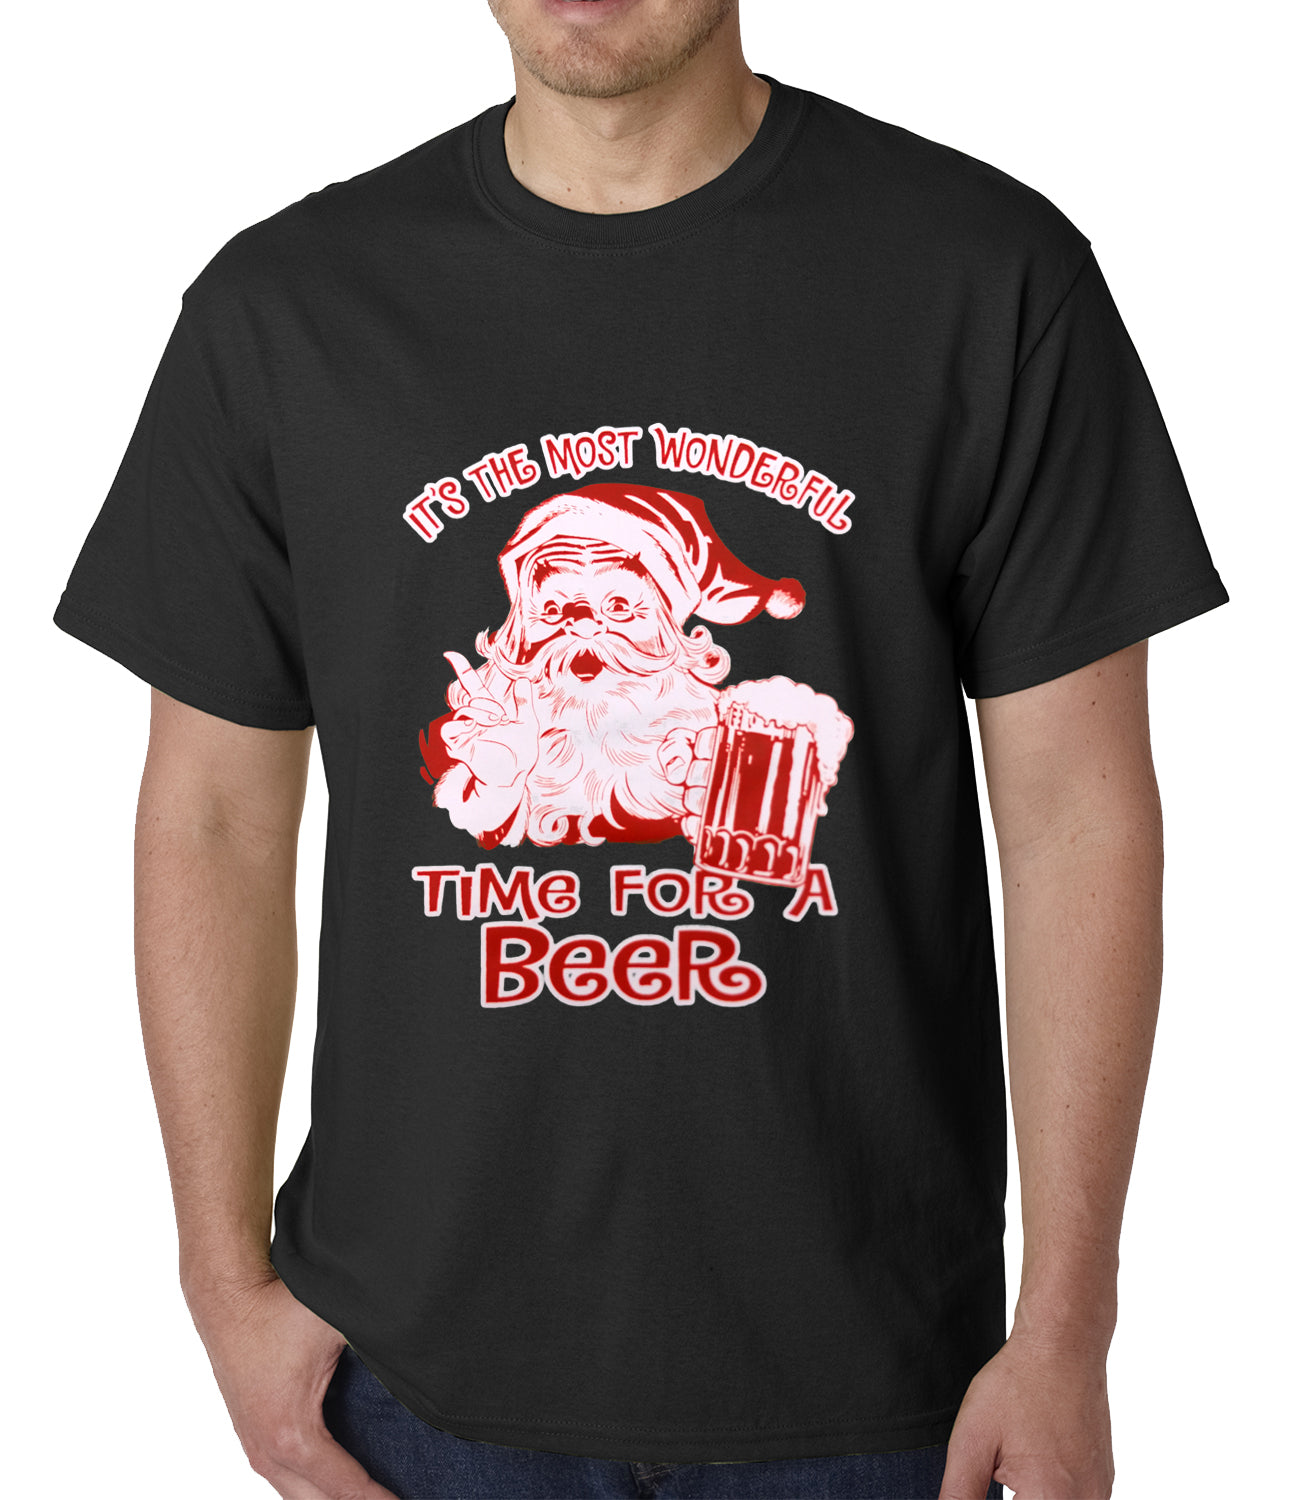 a81343600 It's The Most Wonderful Time for a Beer Funny Christmas Mens T-shirt –  Bewild